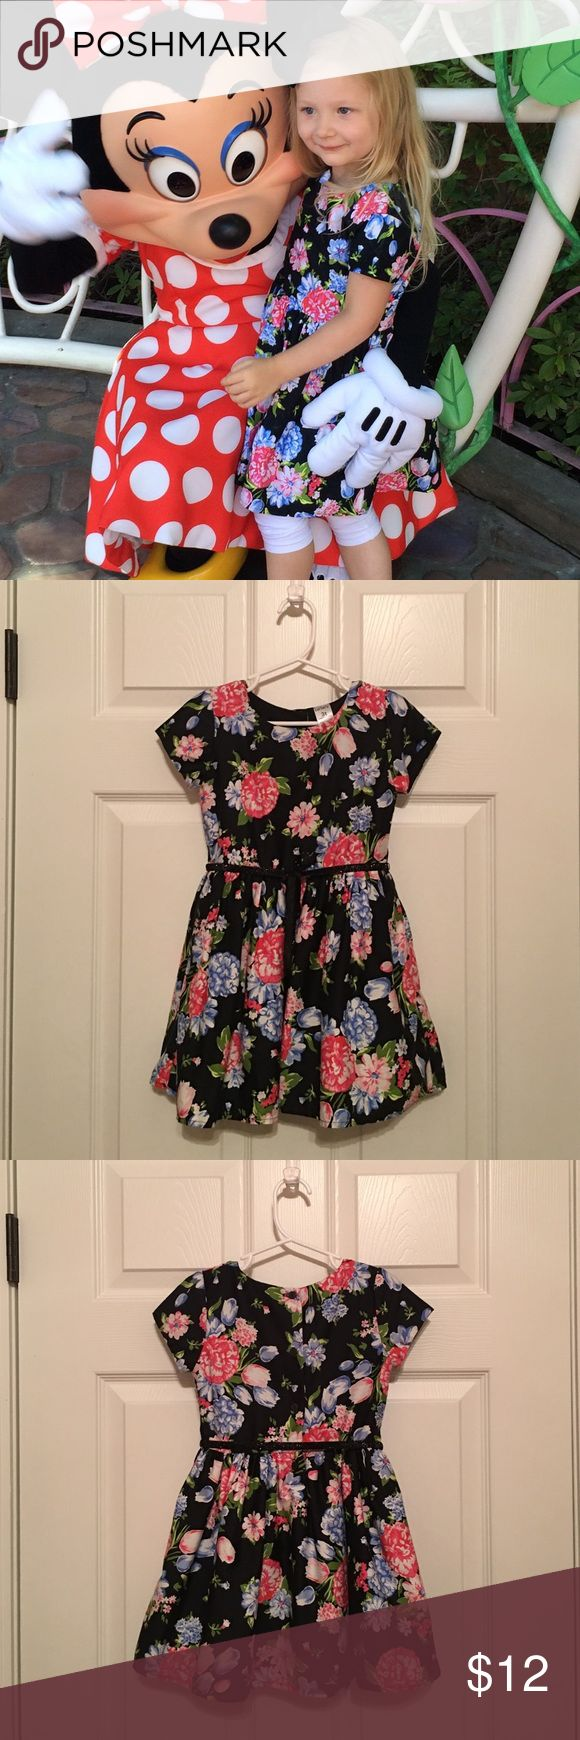 Carter's Dress-black with floral print (cotton) My daughter picked this dress from her closet to wear to Disneyland. She wanted to look her best for her idol Minnie Mouse! She received so many compliments. I removed the sparkle belt because it was daytime. Good condition. Full skirt with pockets. Shell-100% cotton. Lining-100% polyester. Machine wash and dry. Carter's Dresses Casual